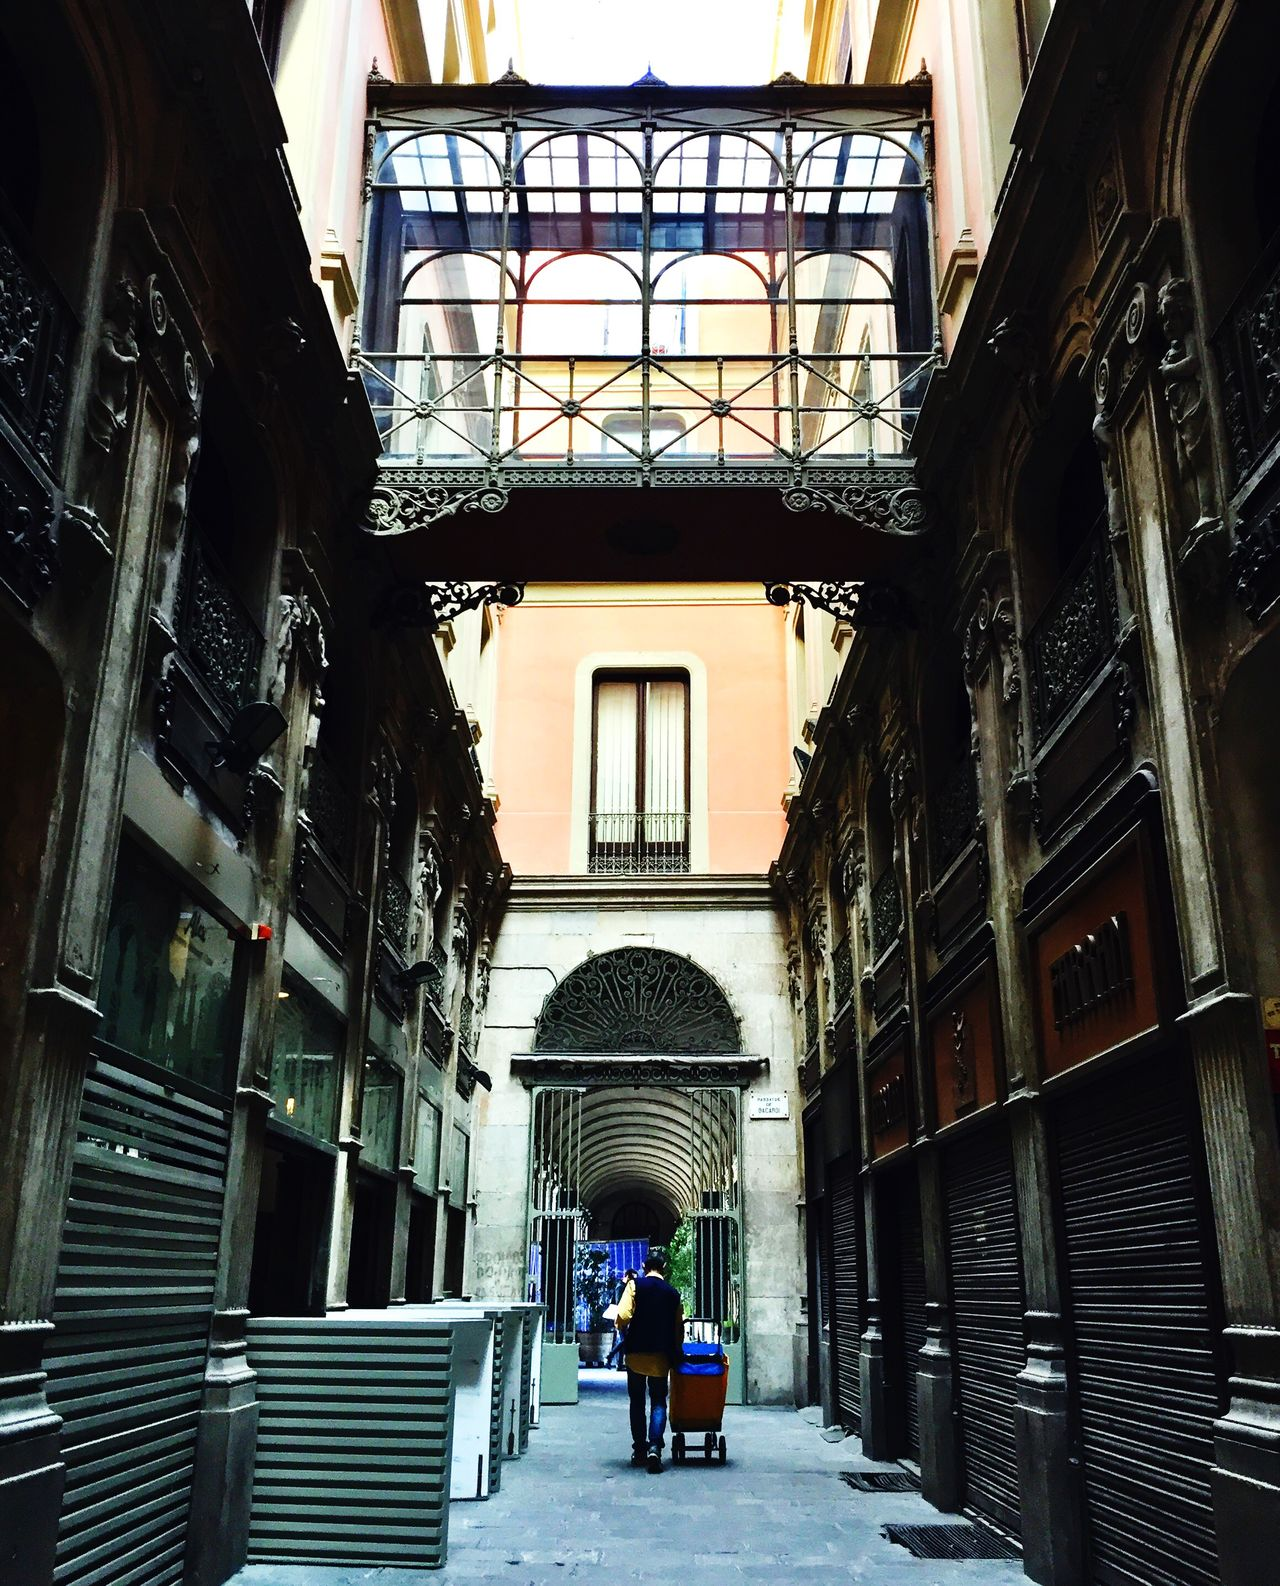 Architecture City Built Structure Barcelona Streetphotography Street Photography Cityscape Old Town Day Outdoors Adult People Adults Only